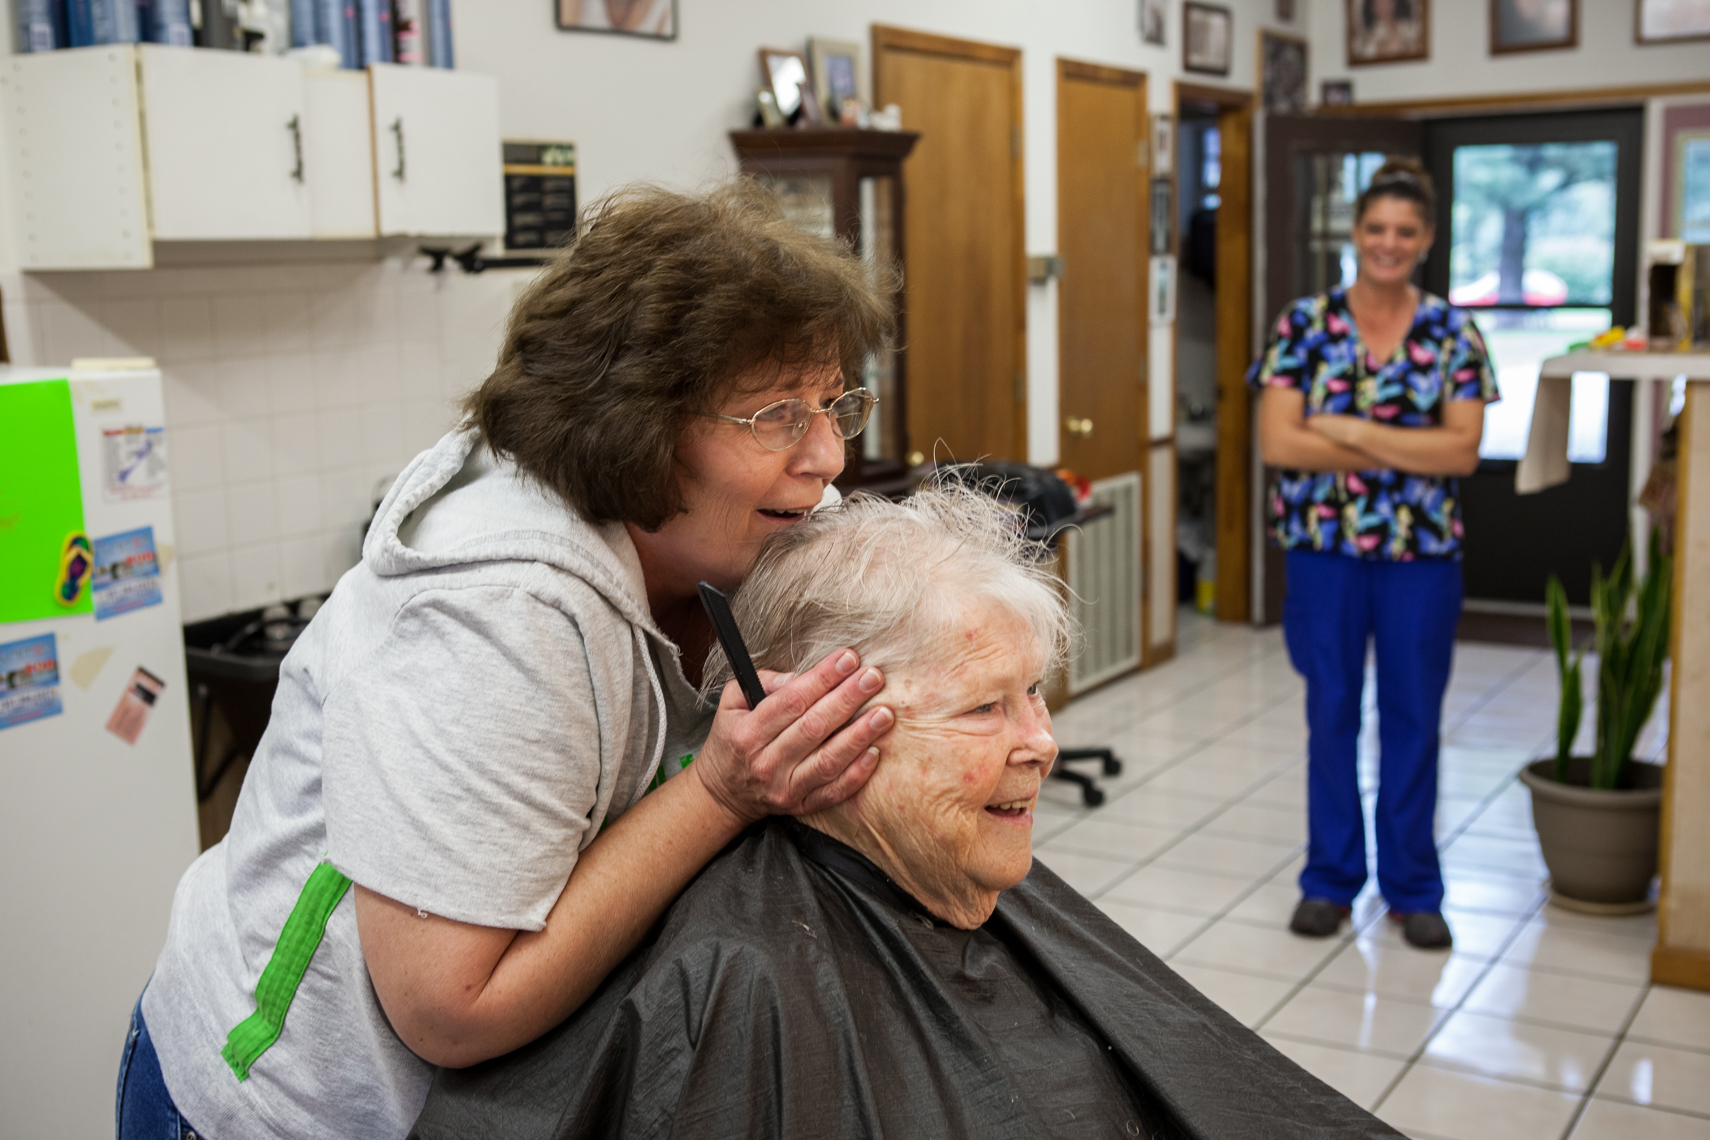 Elderly healthcare, golden, mature, portrait, women together, authentic, Tennessee, TN, medicare, documentary, Nashville editorial photographer photojournalist, Kristina Krug Photography, hair salon, hair stylist, rural, country, home, health, worker, at work, workplace, beauty, shop